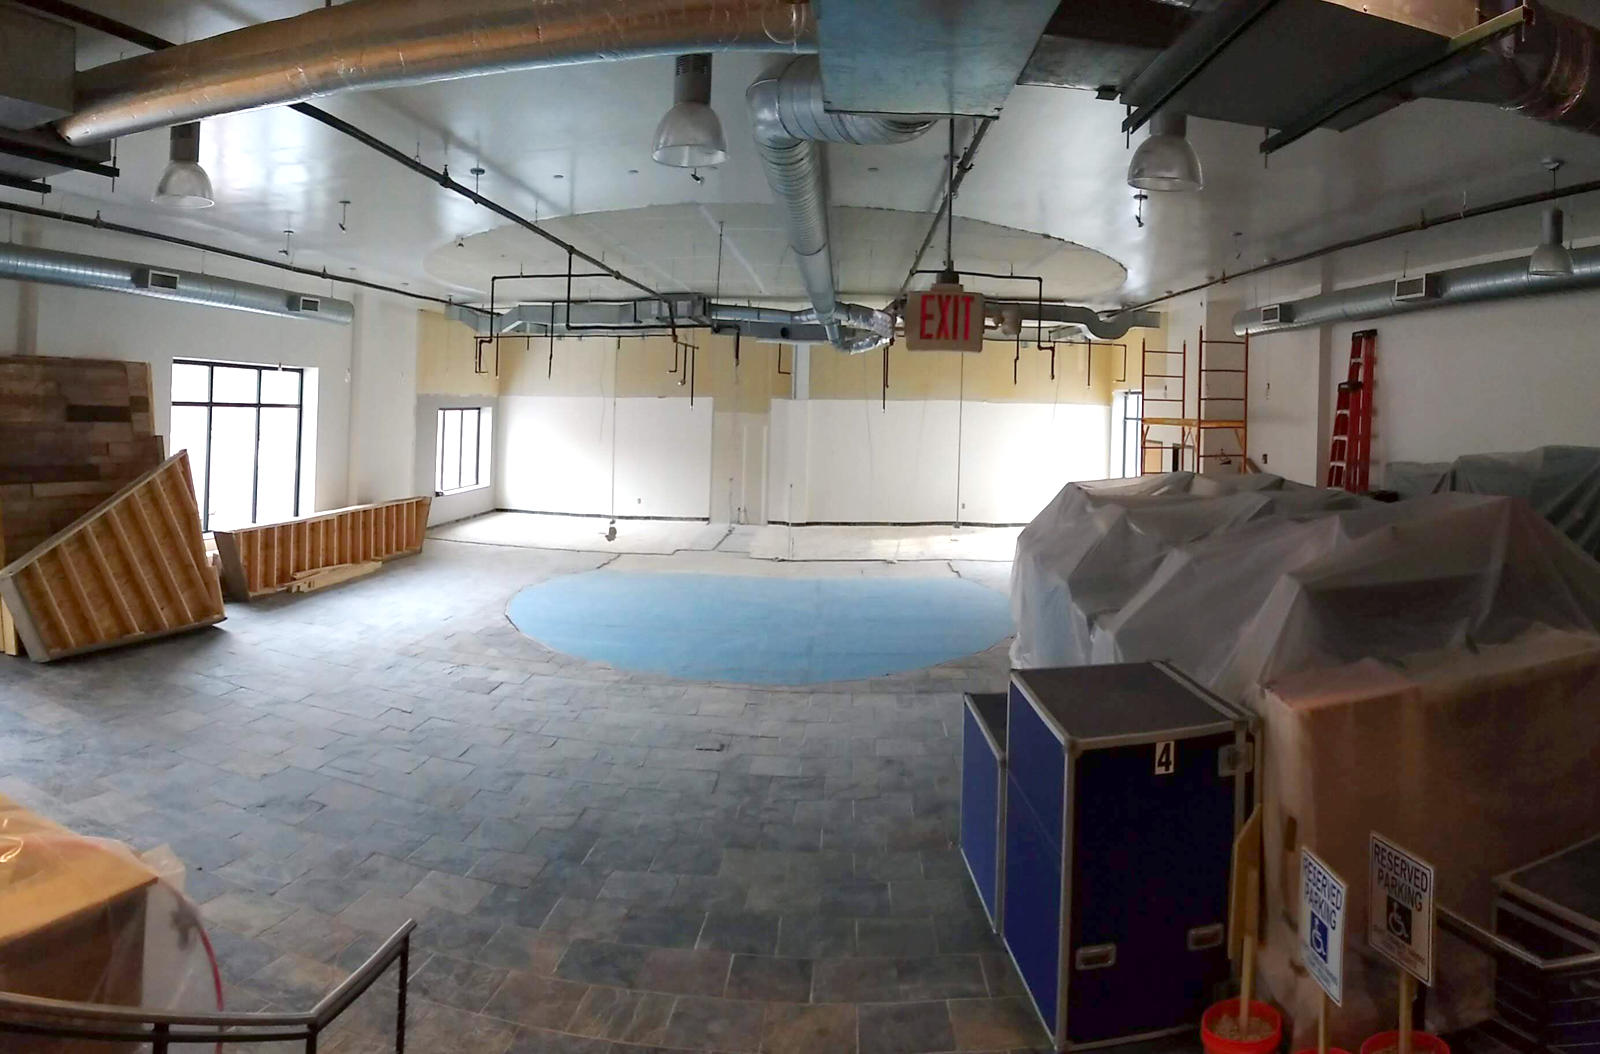 3rd day of demo, back rooms removed